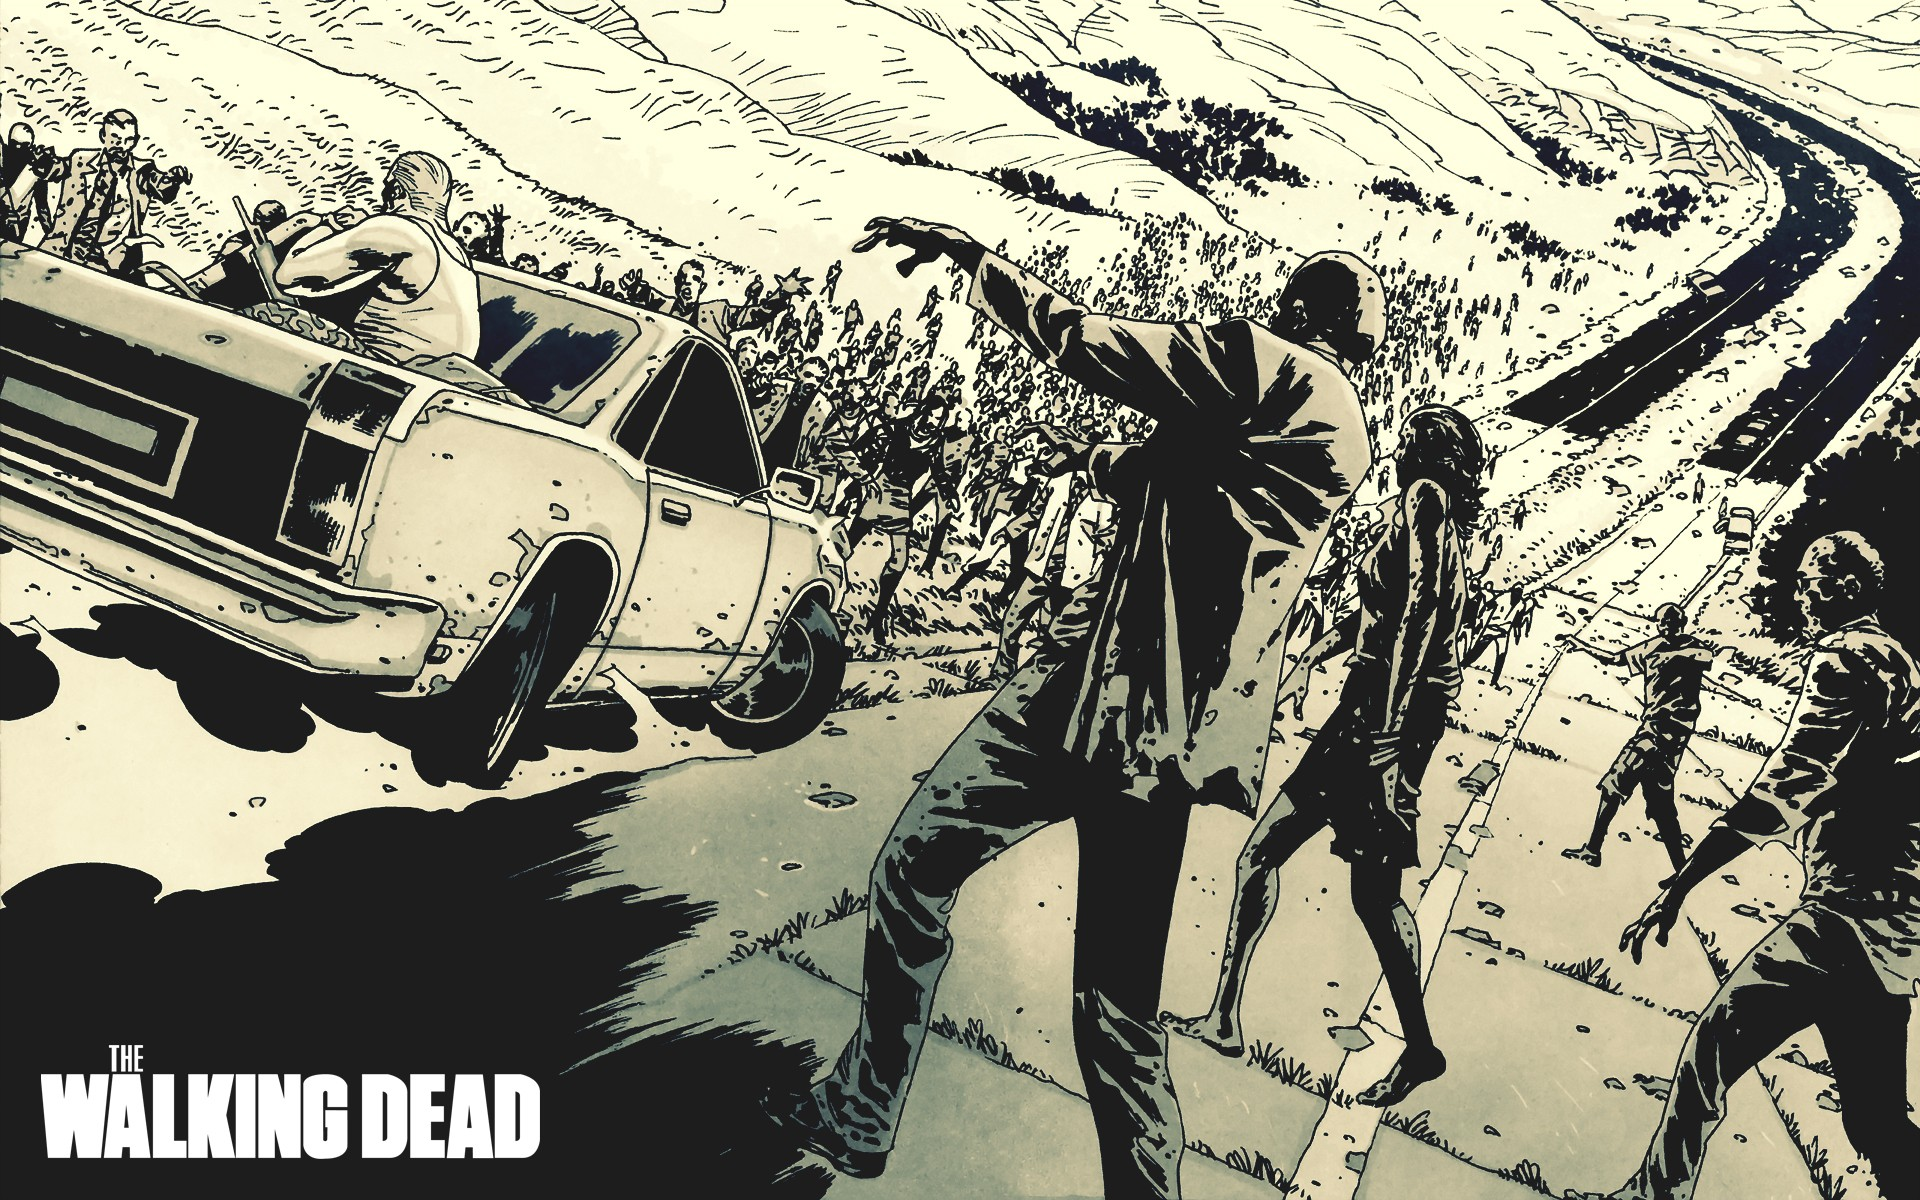 197 the walking dead hd wallpapers background images wallpaper 197 the walking dead hd wallpapers background images wallpaper abyss page 2 voltagebd Choice Image